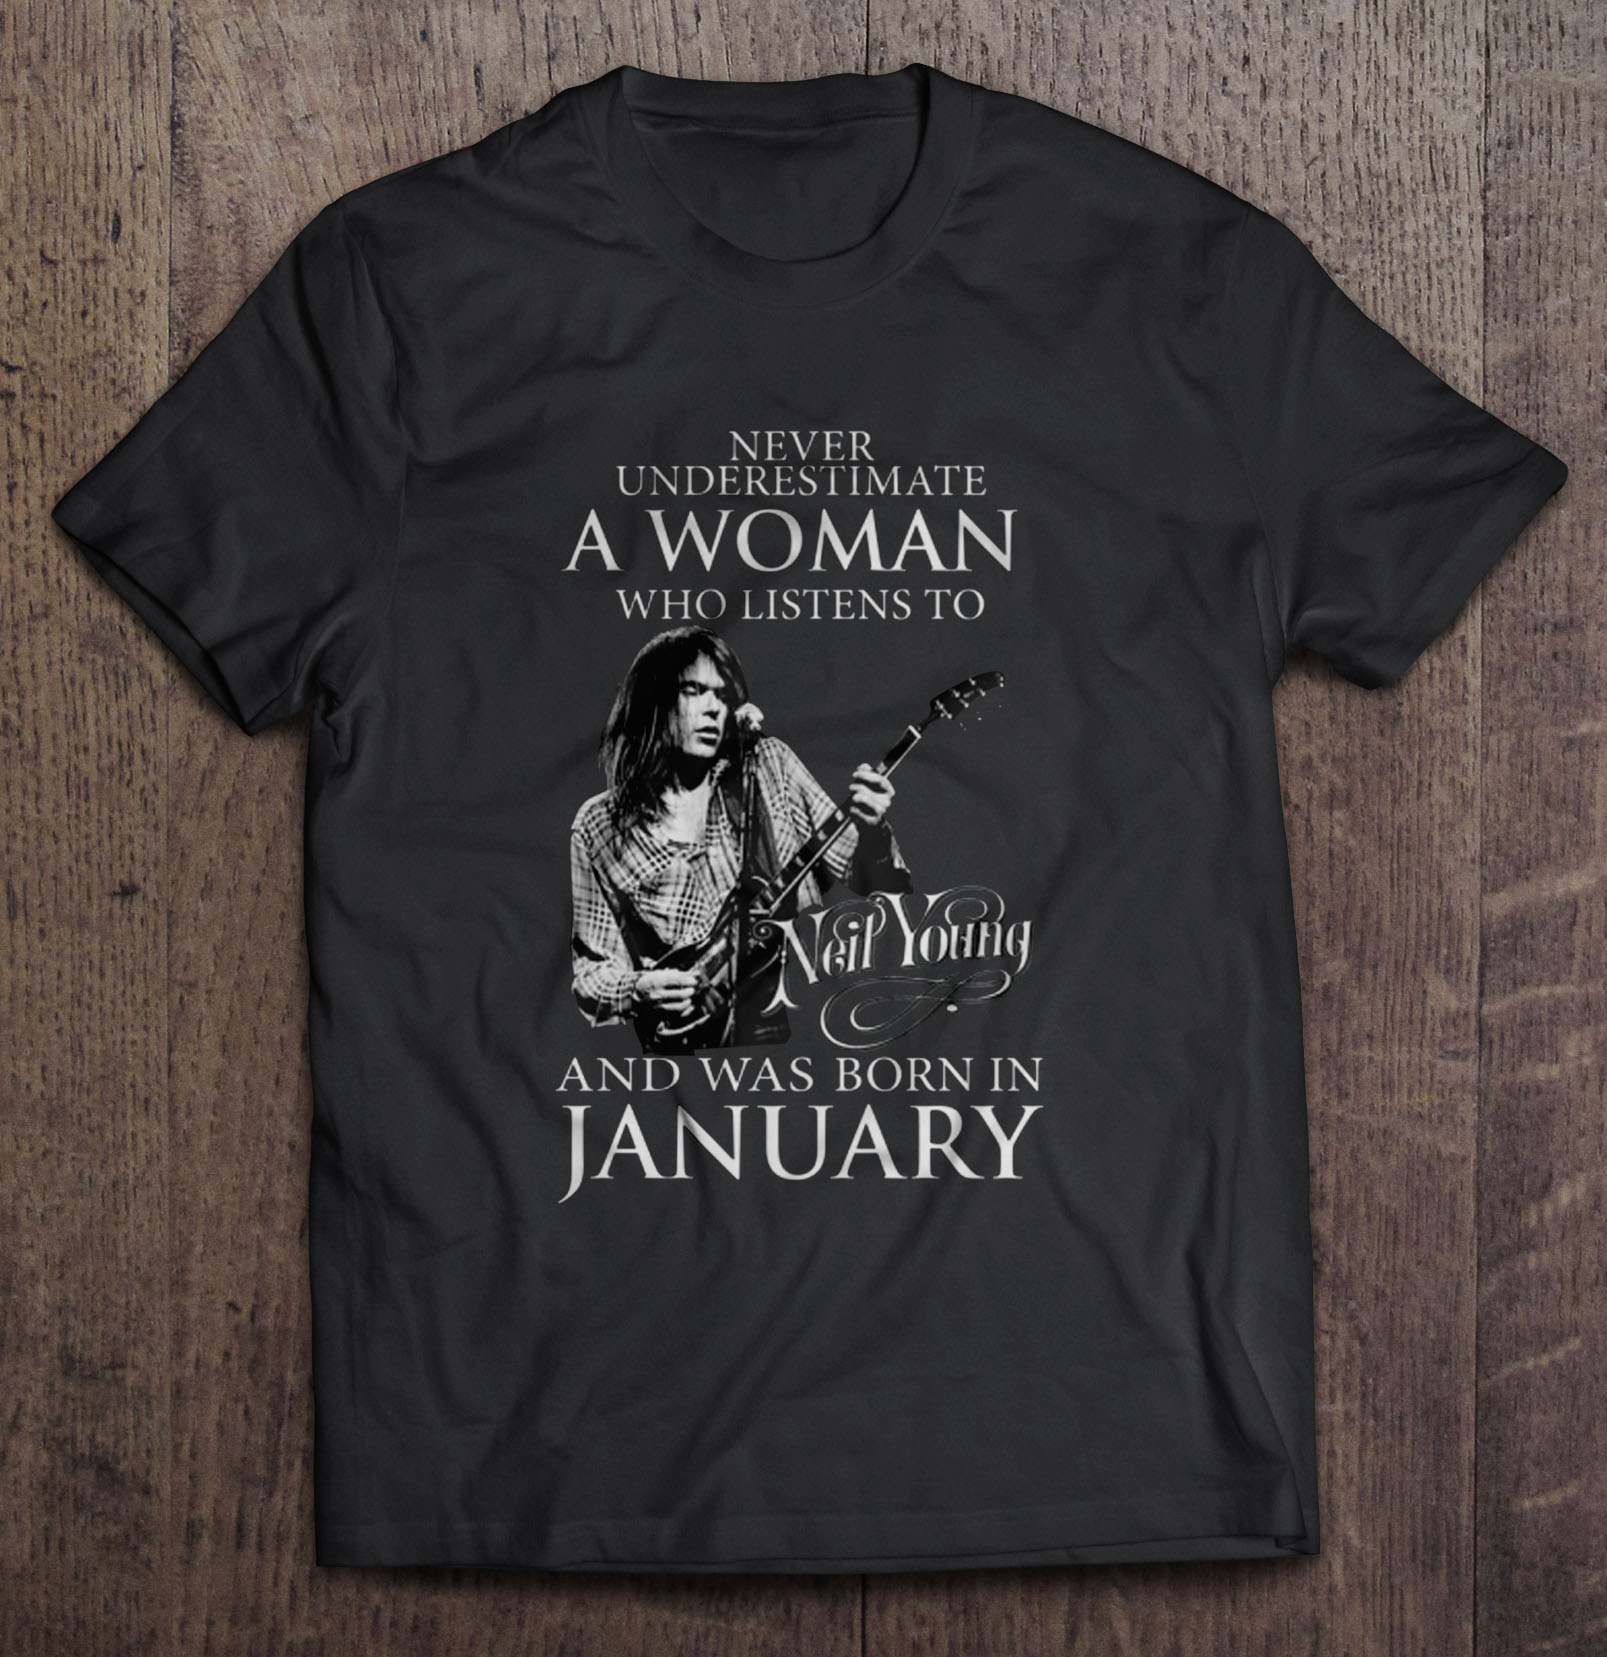 Never Undersestimate A Woman Who was Born in 1973 Adult Crewneck Sweatshirt